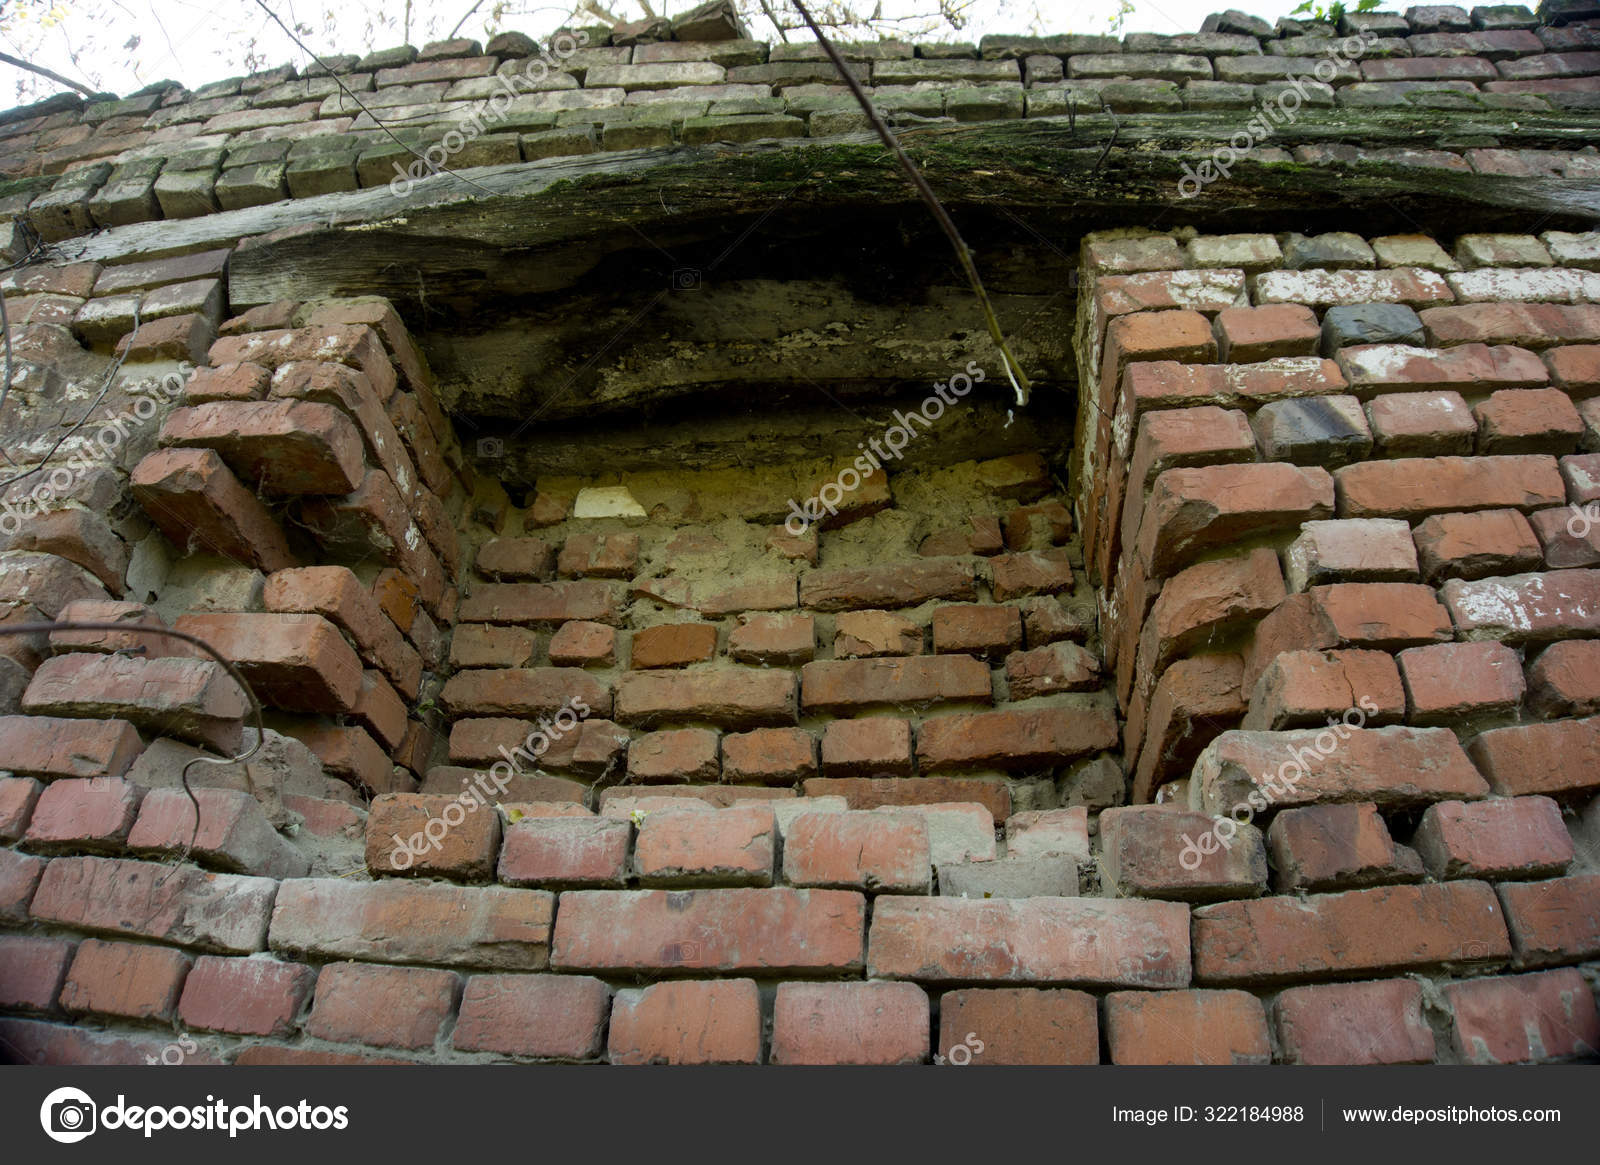 Location Russia Krasnodar Territory Abandoned Brick Factory Stock Photo C Blackdiver93 322184988